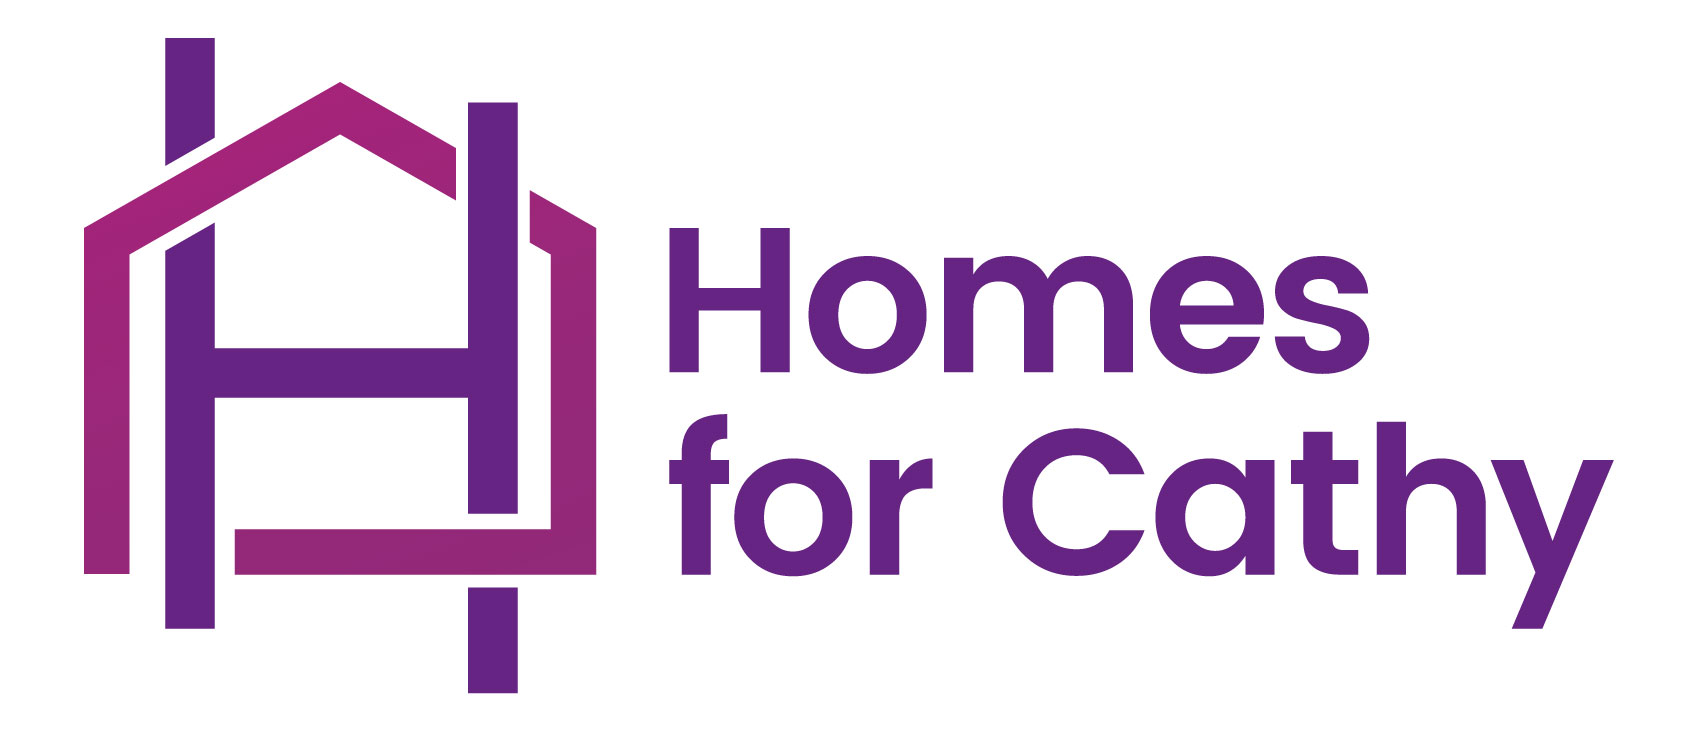 Homes for Cathy logo